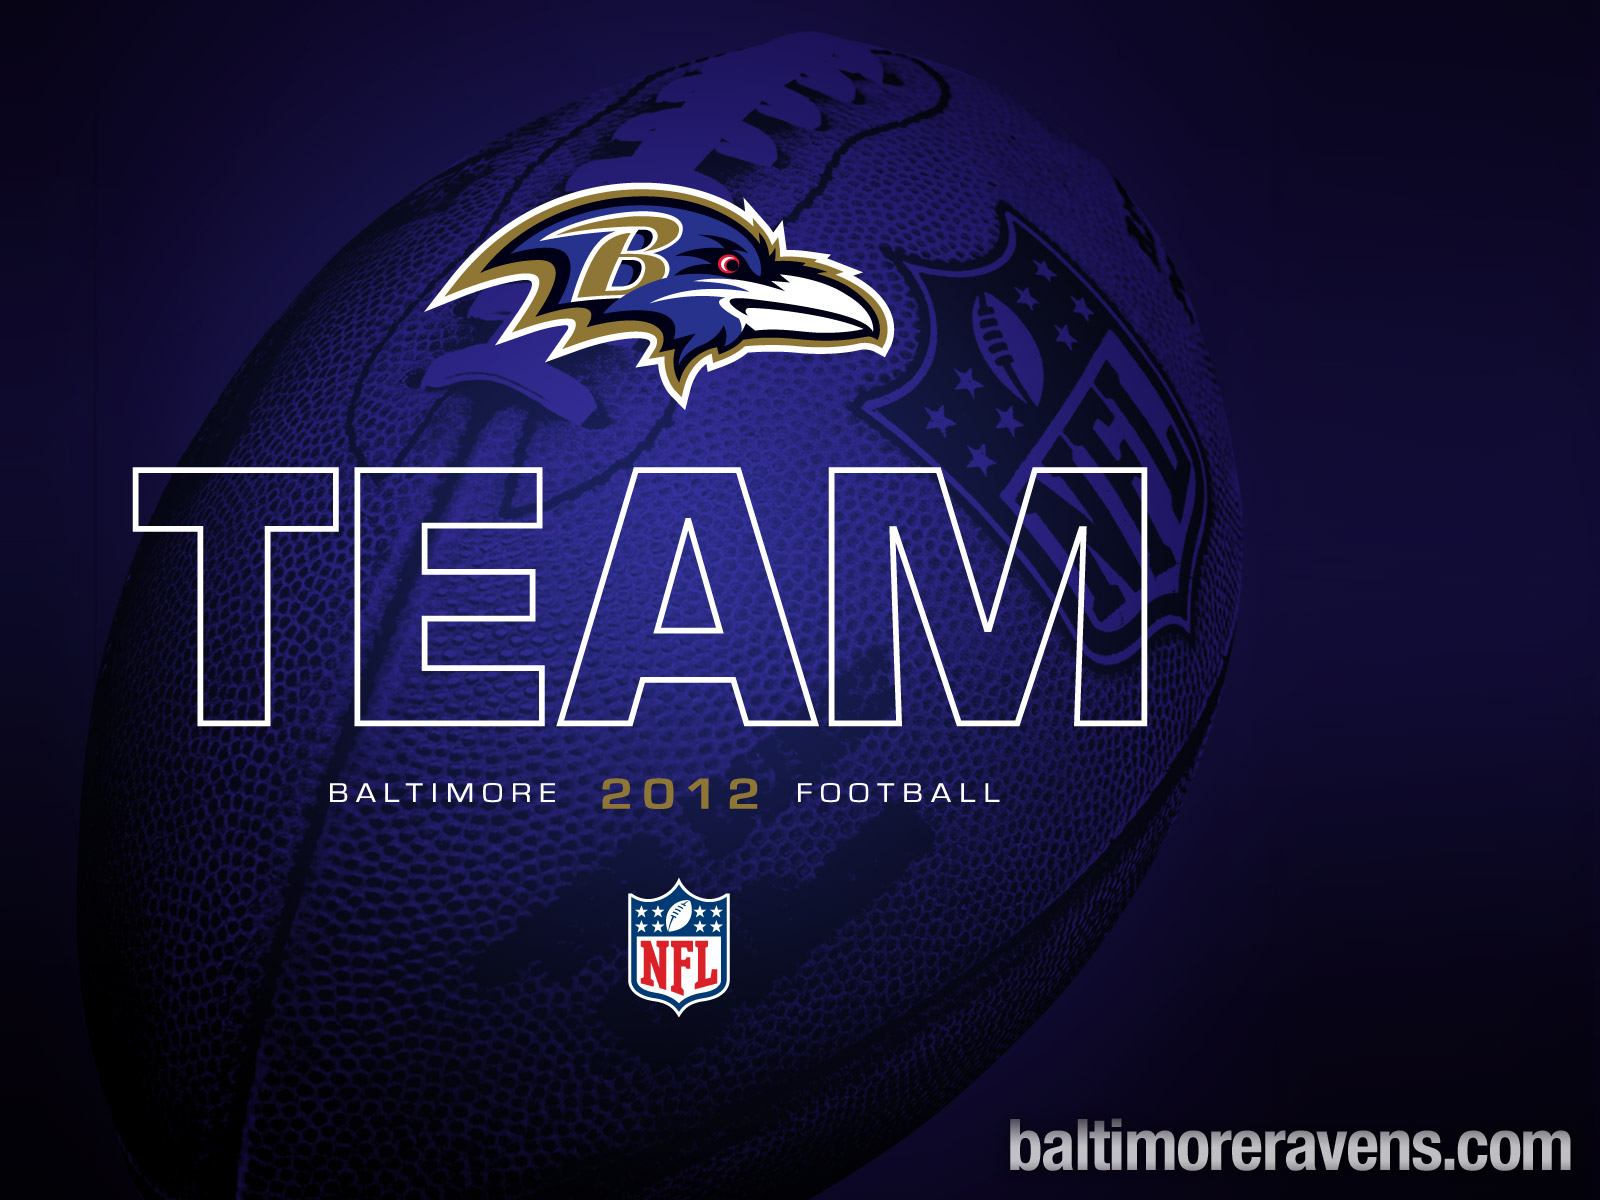 RAVENS SCREENSAVERS 1600x1200